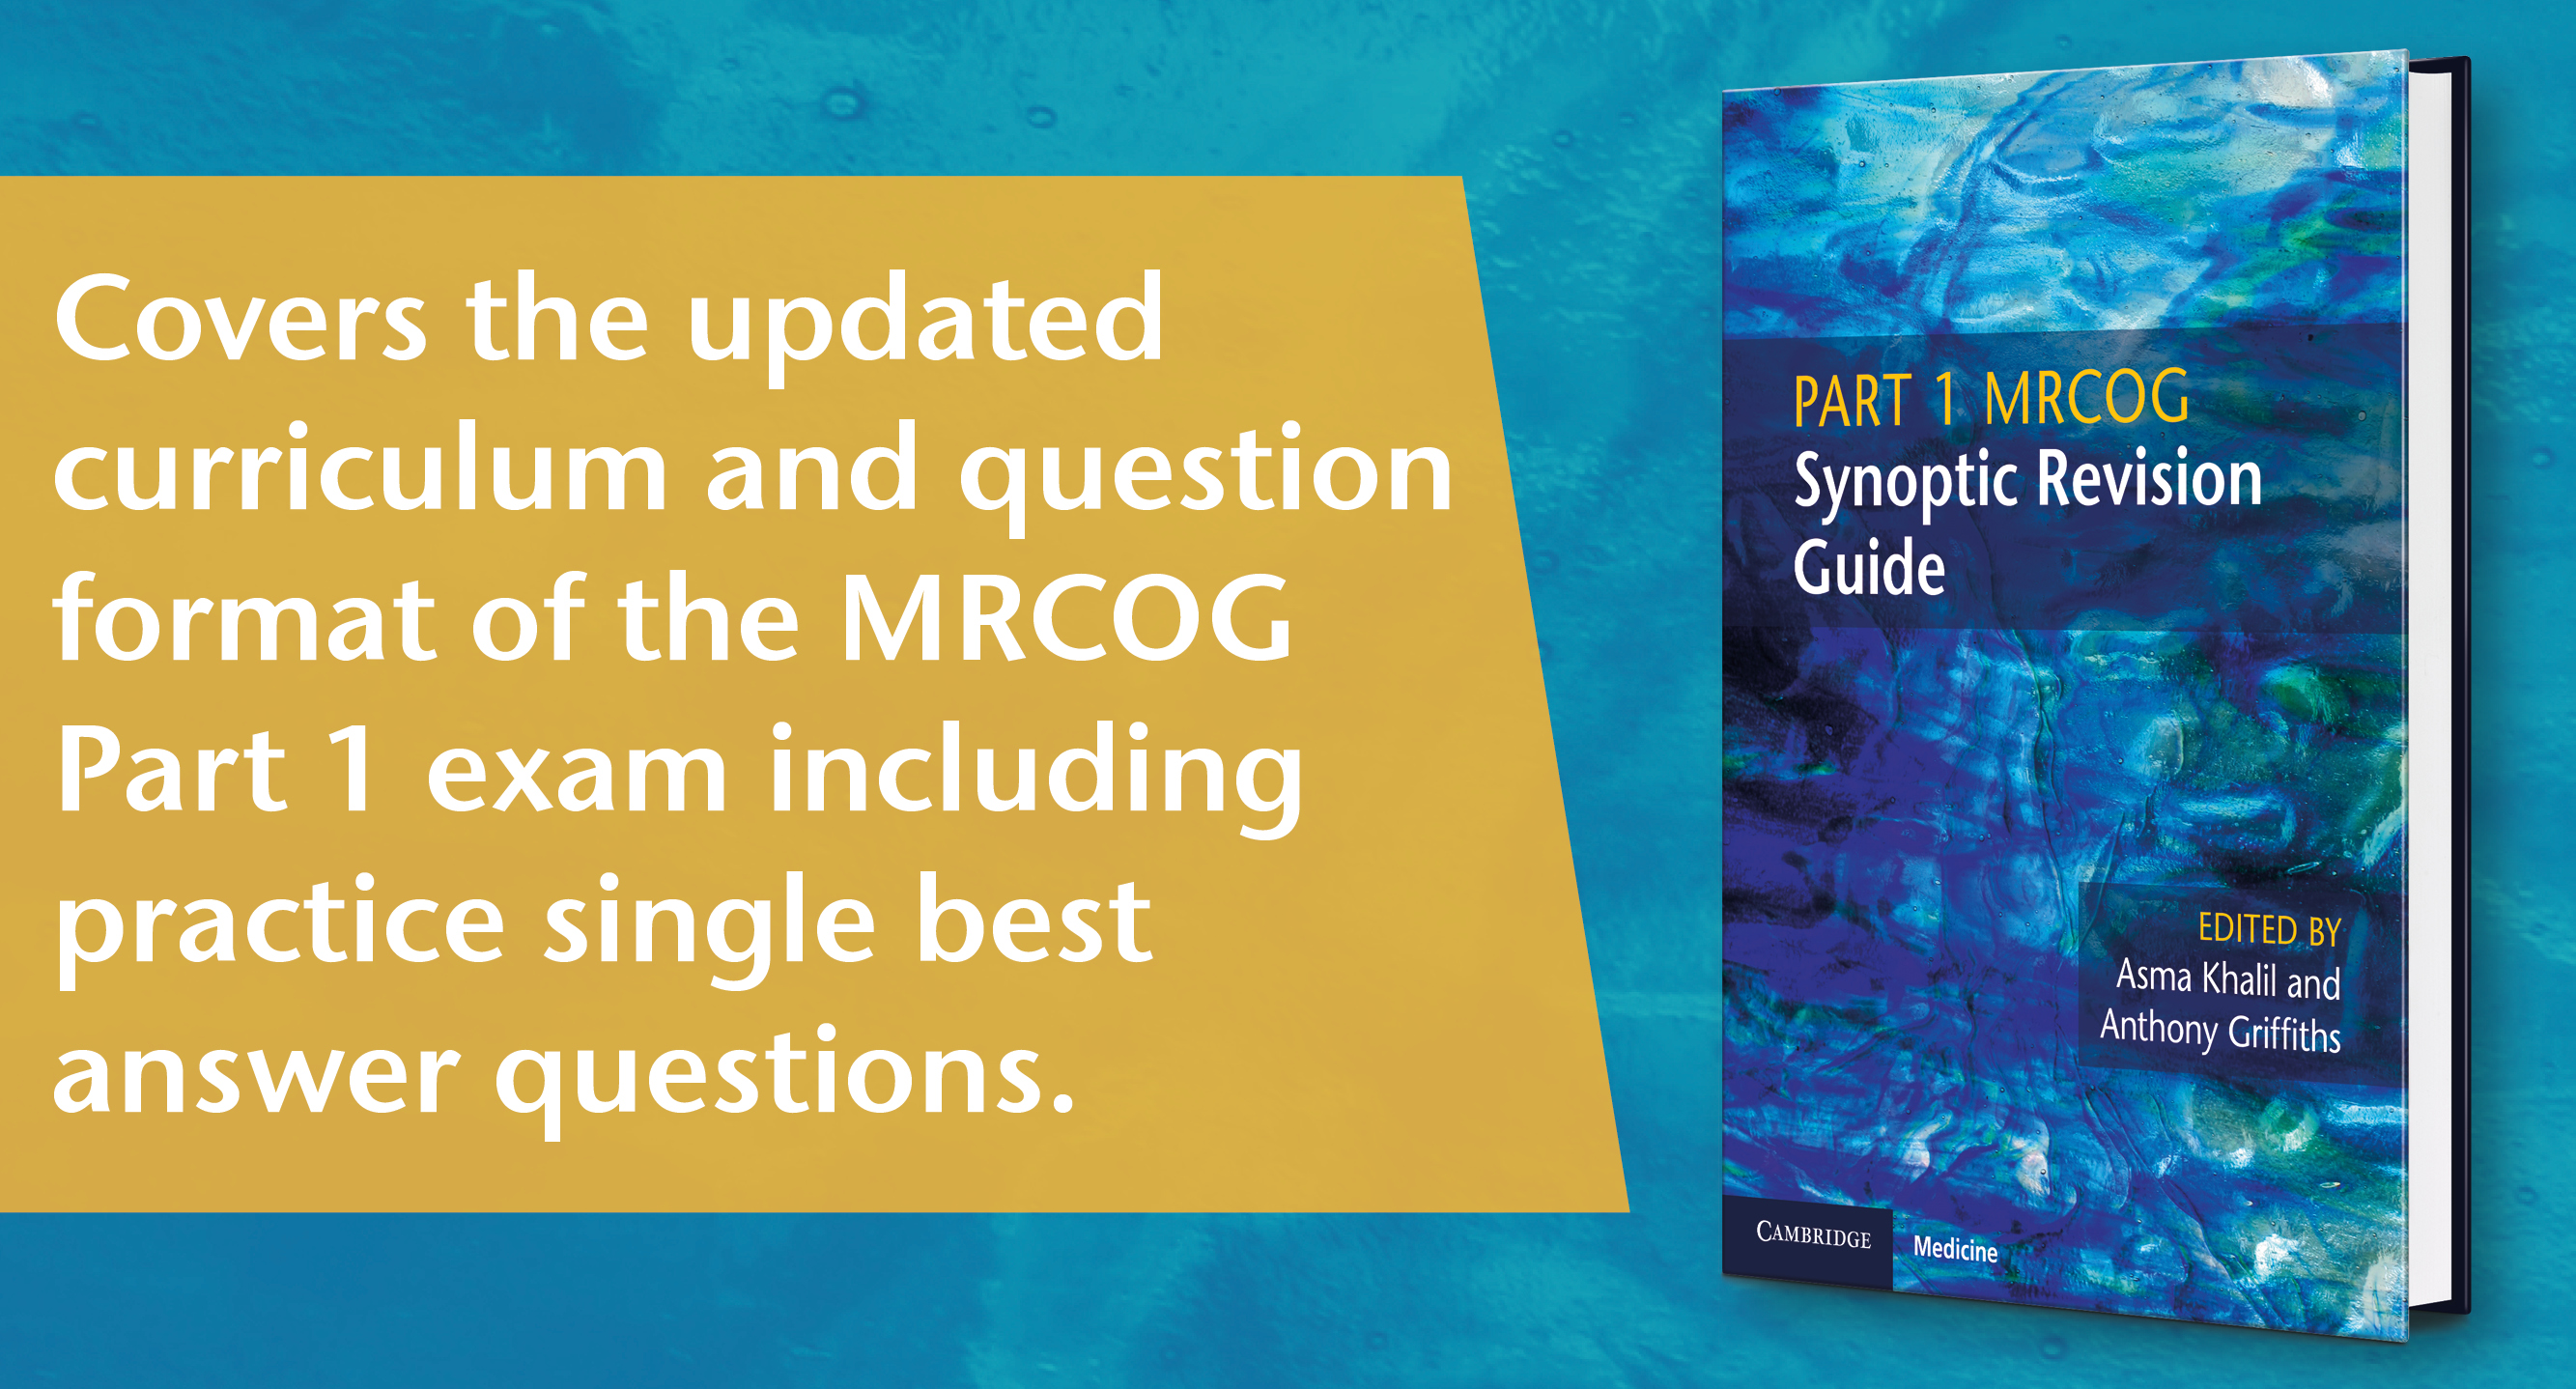 Part 1 MRCOG Synoptic Revision Guide